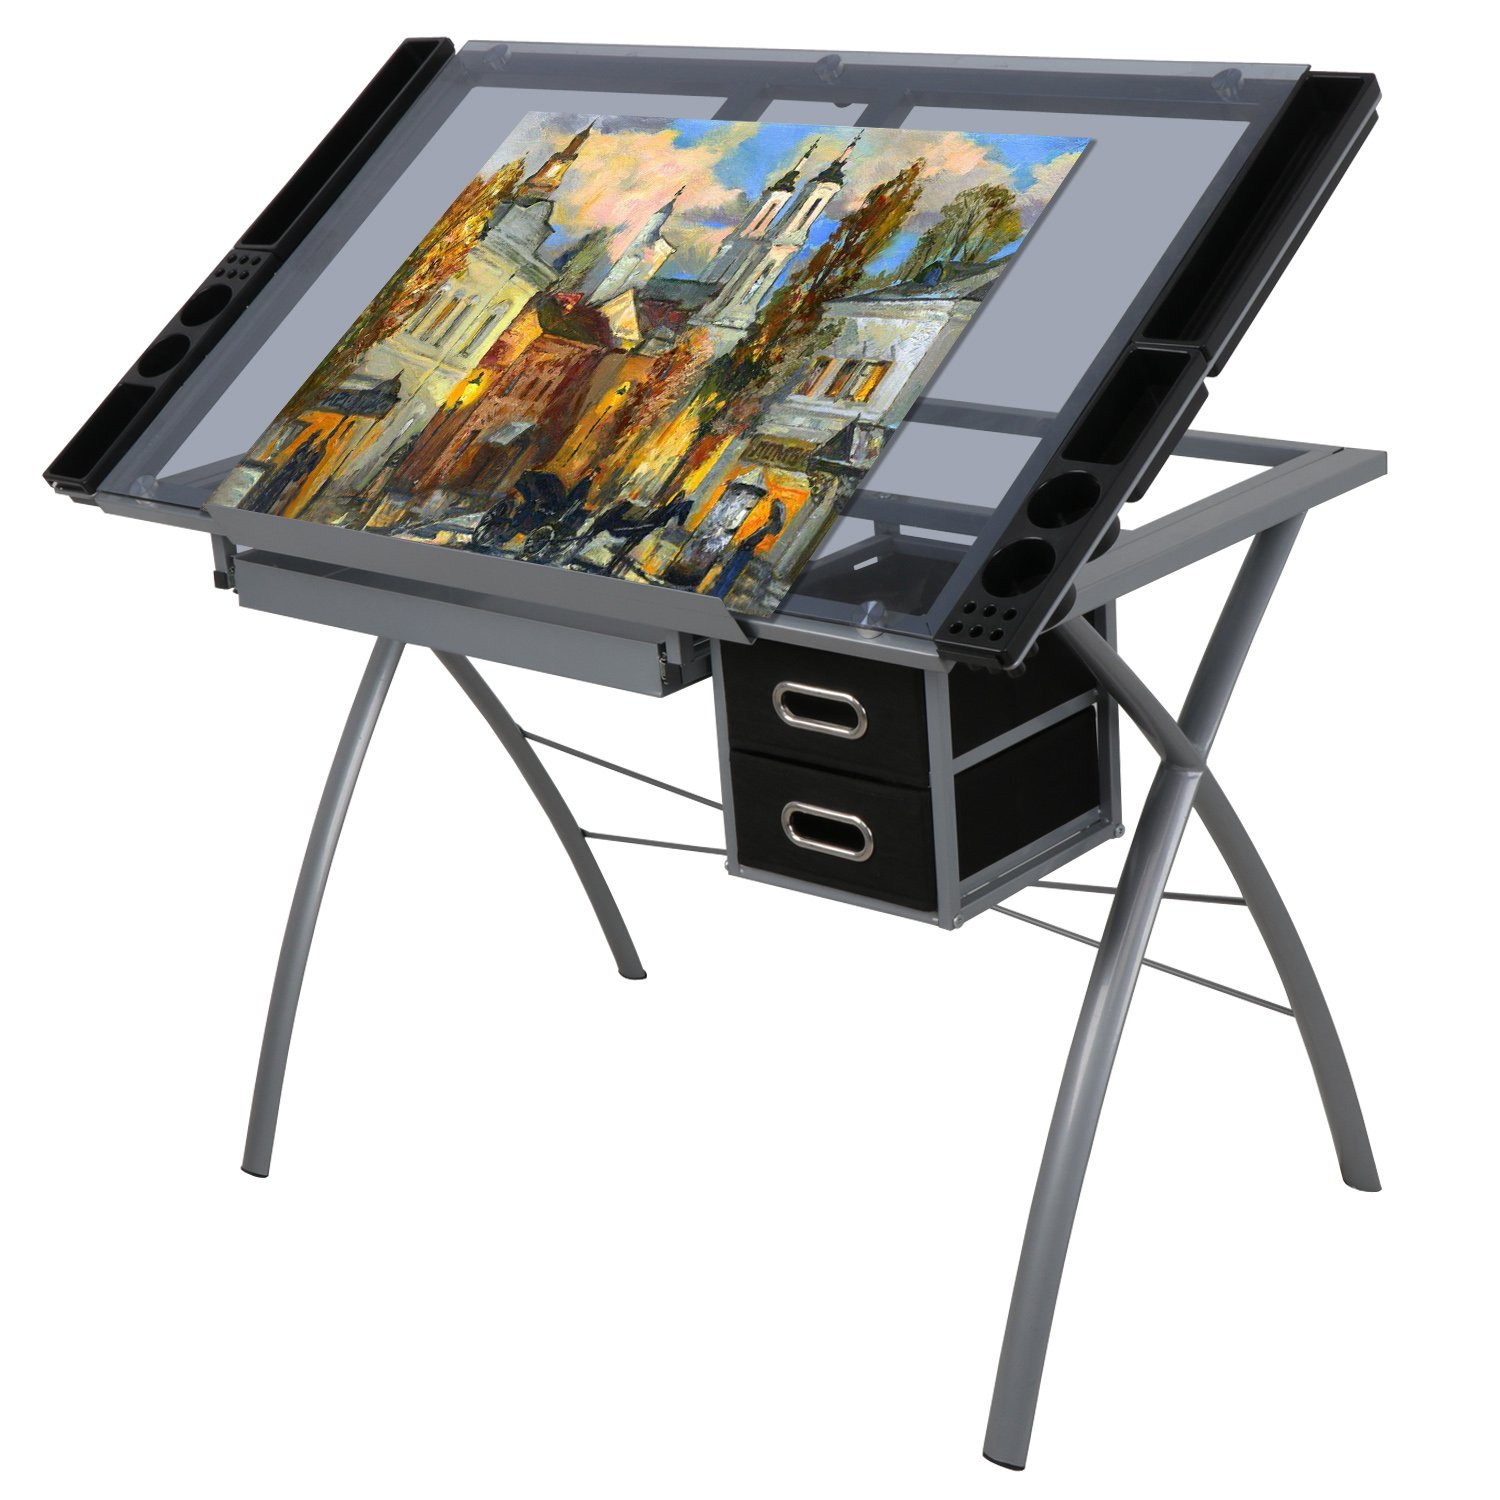 ZENY Glass Top Craft Station Drafting Table Drawing Desk Adjustable to 62 Degree w/ Drawers by ZENY